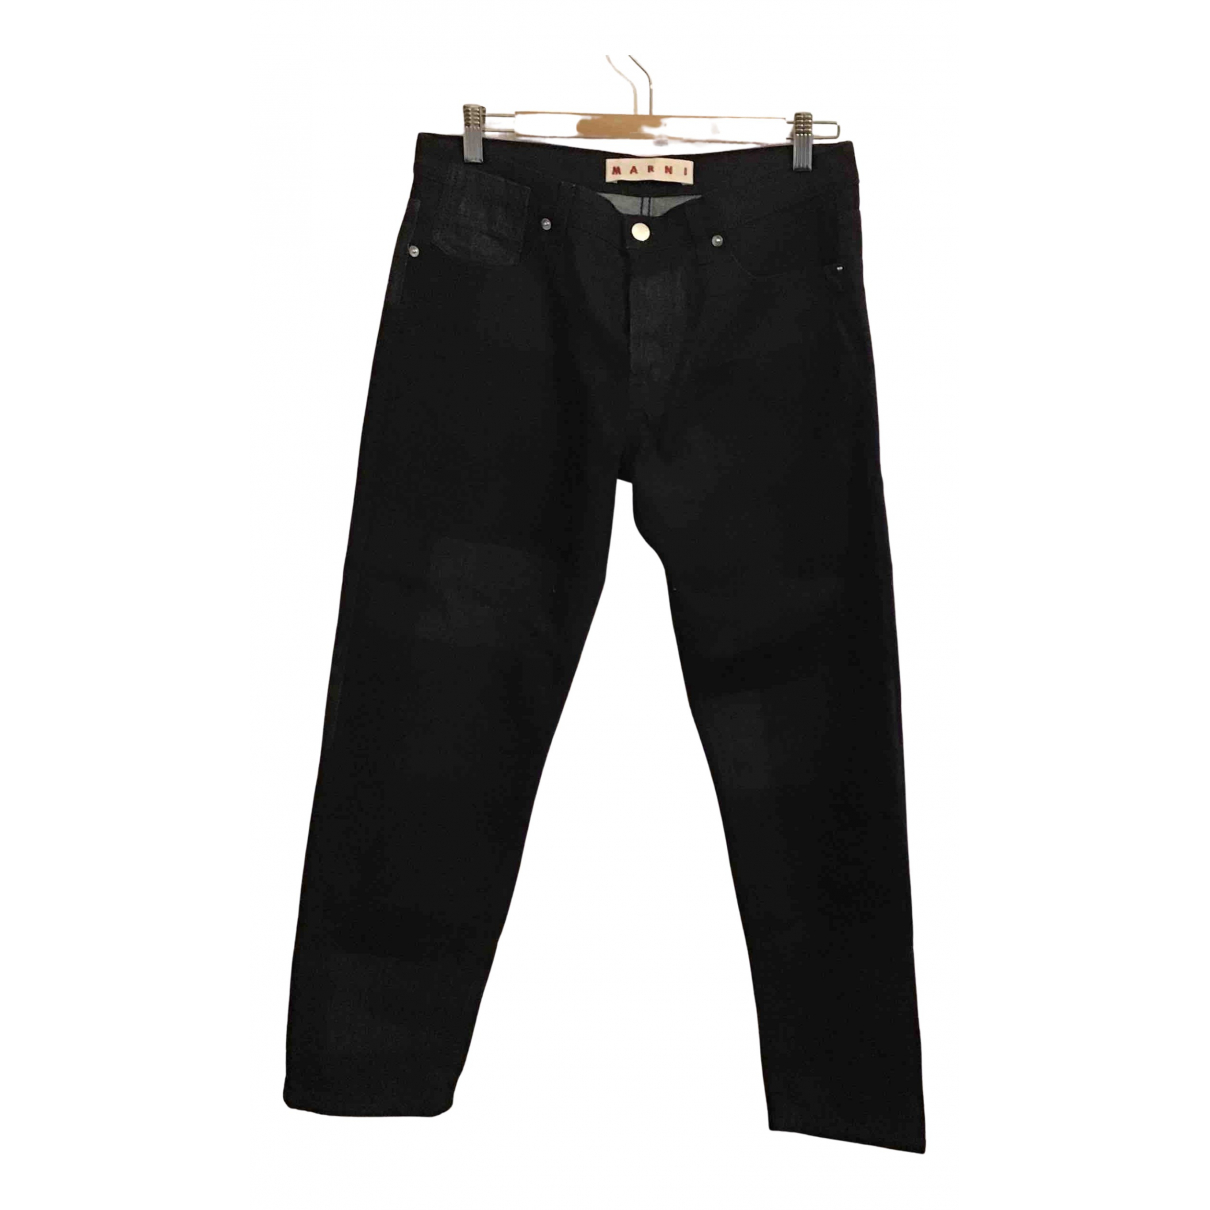 Marni N Blue Denim - Jeans Jeans for Women 26 US